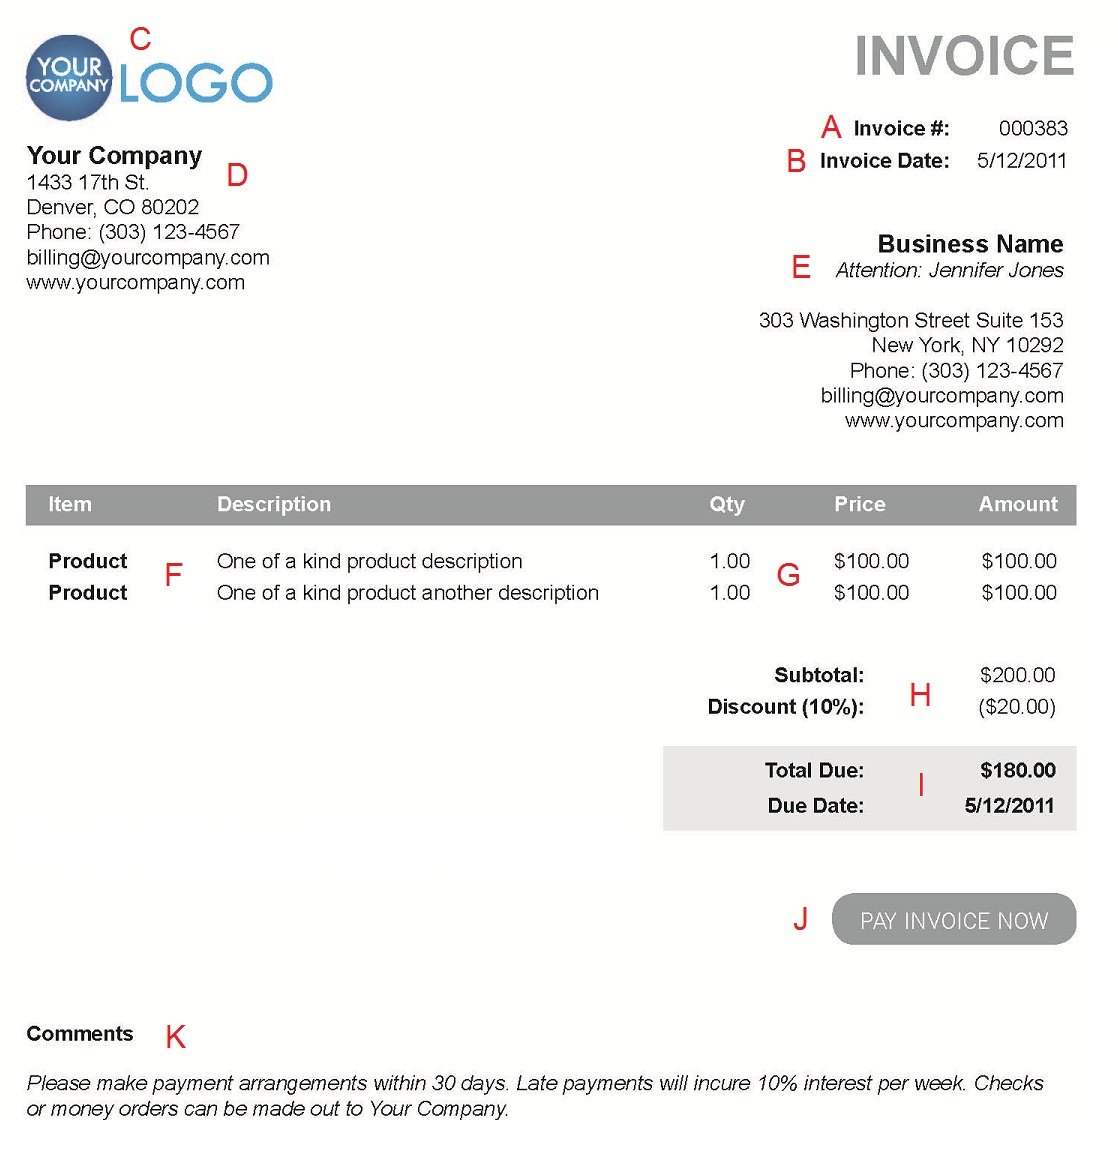 Coolmathgamesus  Stunning The  Different Sections Of An Electronic Payment Invoice With Gorgeous A  With Breathtaking Time Tracking Invoicing Also Free Basic Invoice Template In Addition Invoice Html Template And Invoice Quote As Well As Free Download Invoice Additionally Freelance Invoice Example From Paysimplecom With Coolmathgamesus  Gorgeous The  Different Sections Of An Electronic Payment Invoice With Breathtaking A  And Stunning Time Tracking Invoicing Also Free Basic Invoice Template In Addition Invoice Html Template From Paysimplecom